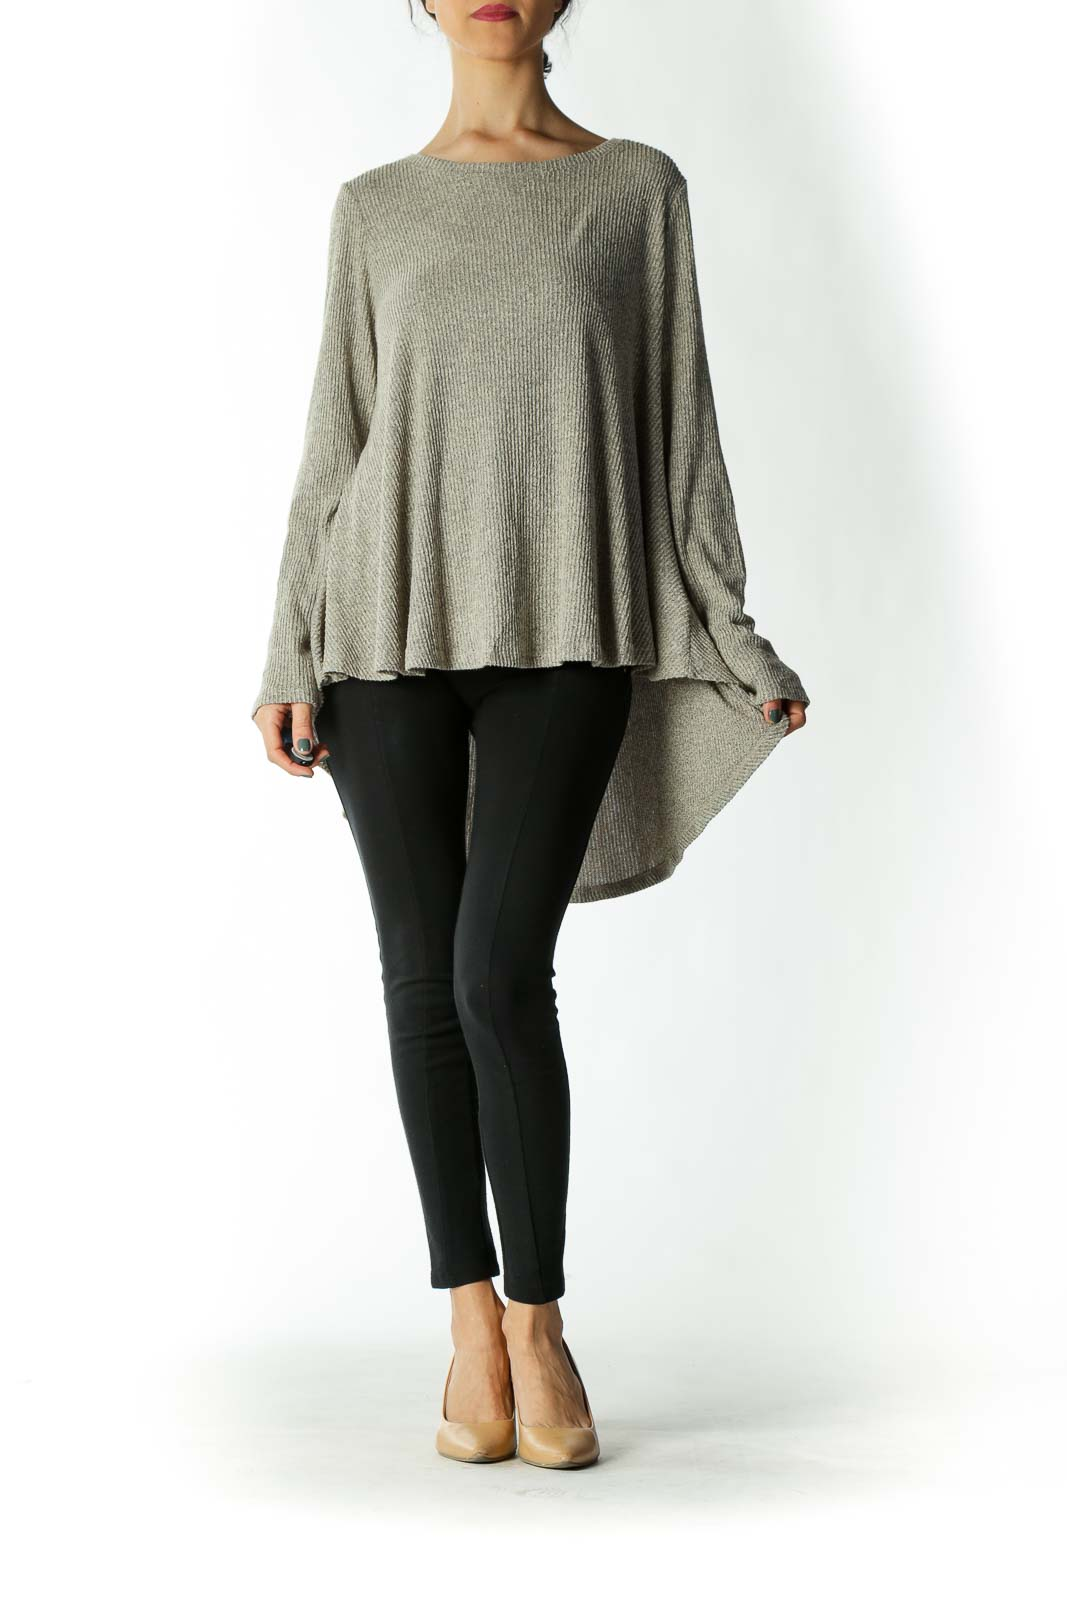 Beige Ribbed Long-Sleeve Flowy Knit Toplogn